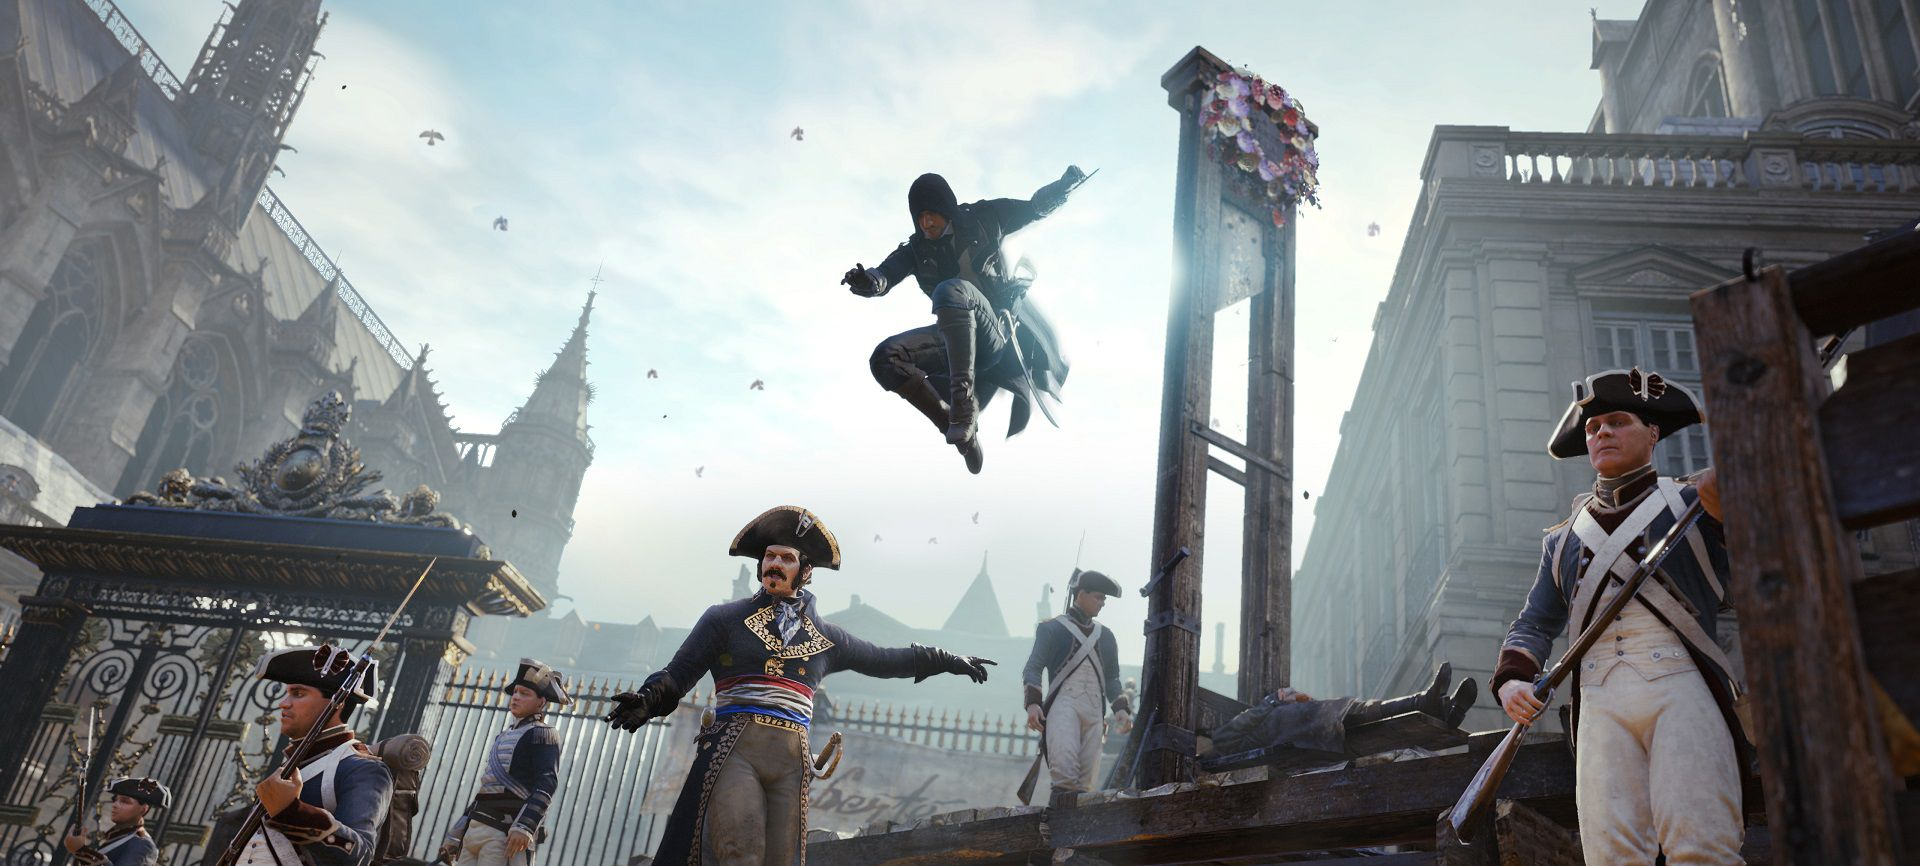 Review: Assassin's Creed: Unity - Slant Magazine